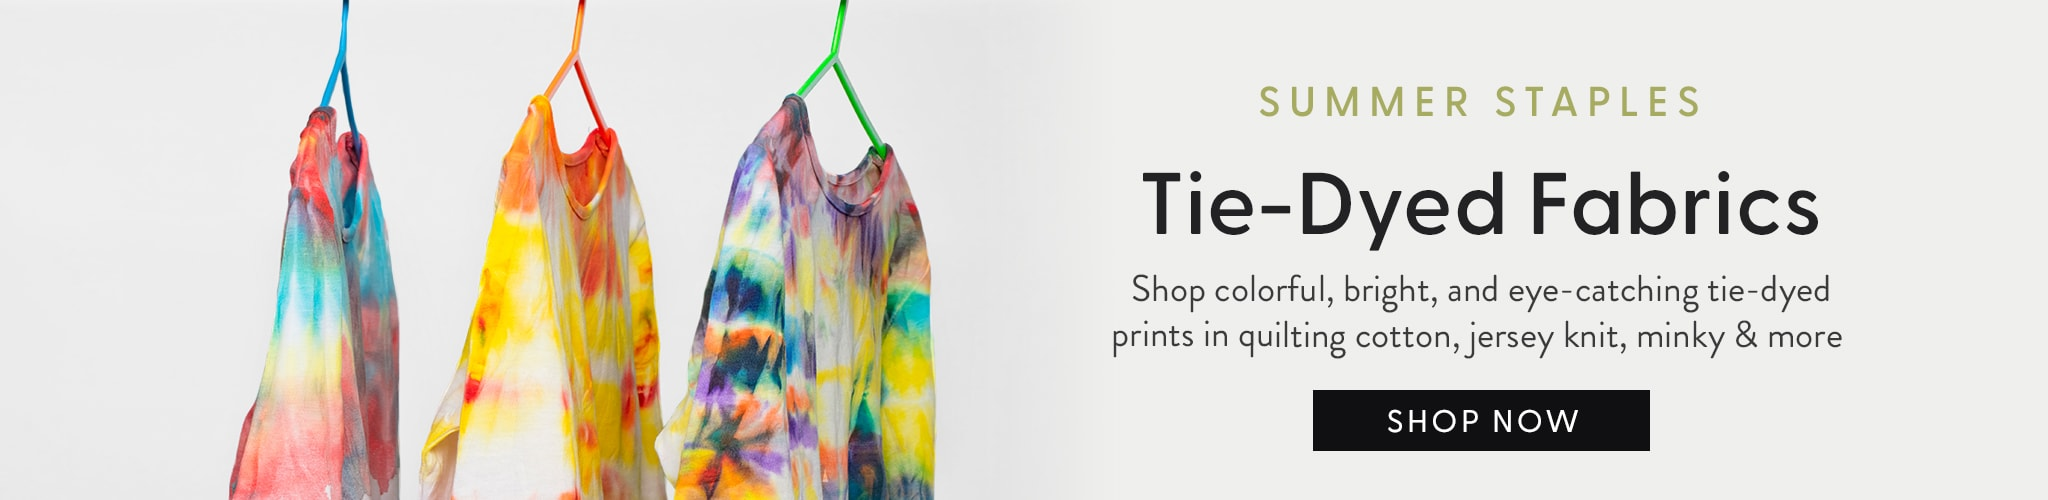 Summer Staples. Tie-Dyed Fabrics - Shop colorful, bright, and eye-catching tie-dyed prints in quilting cotton, jersey knit, minky, and more.